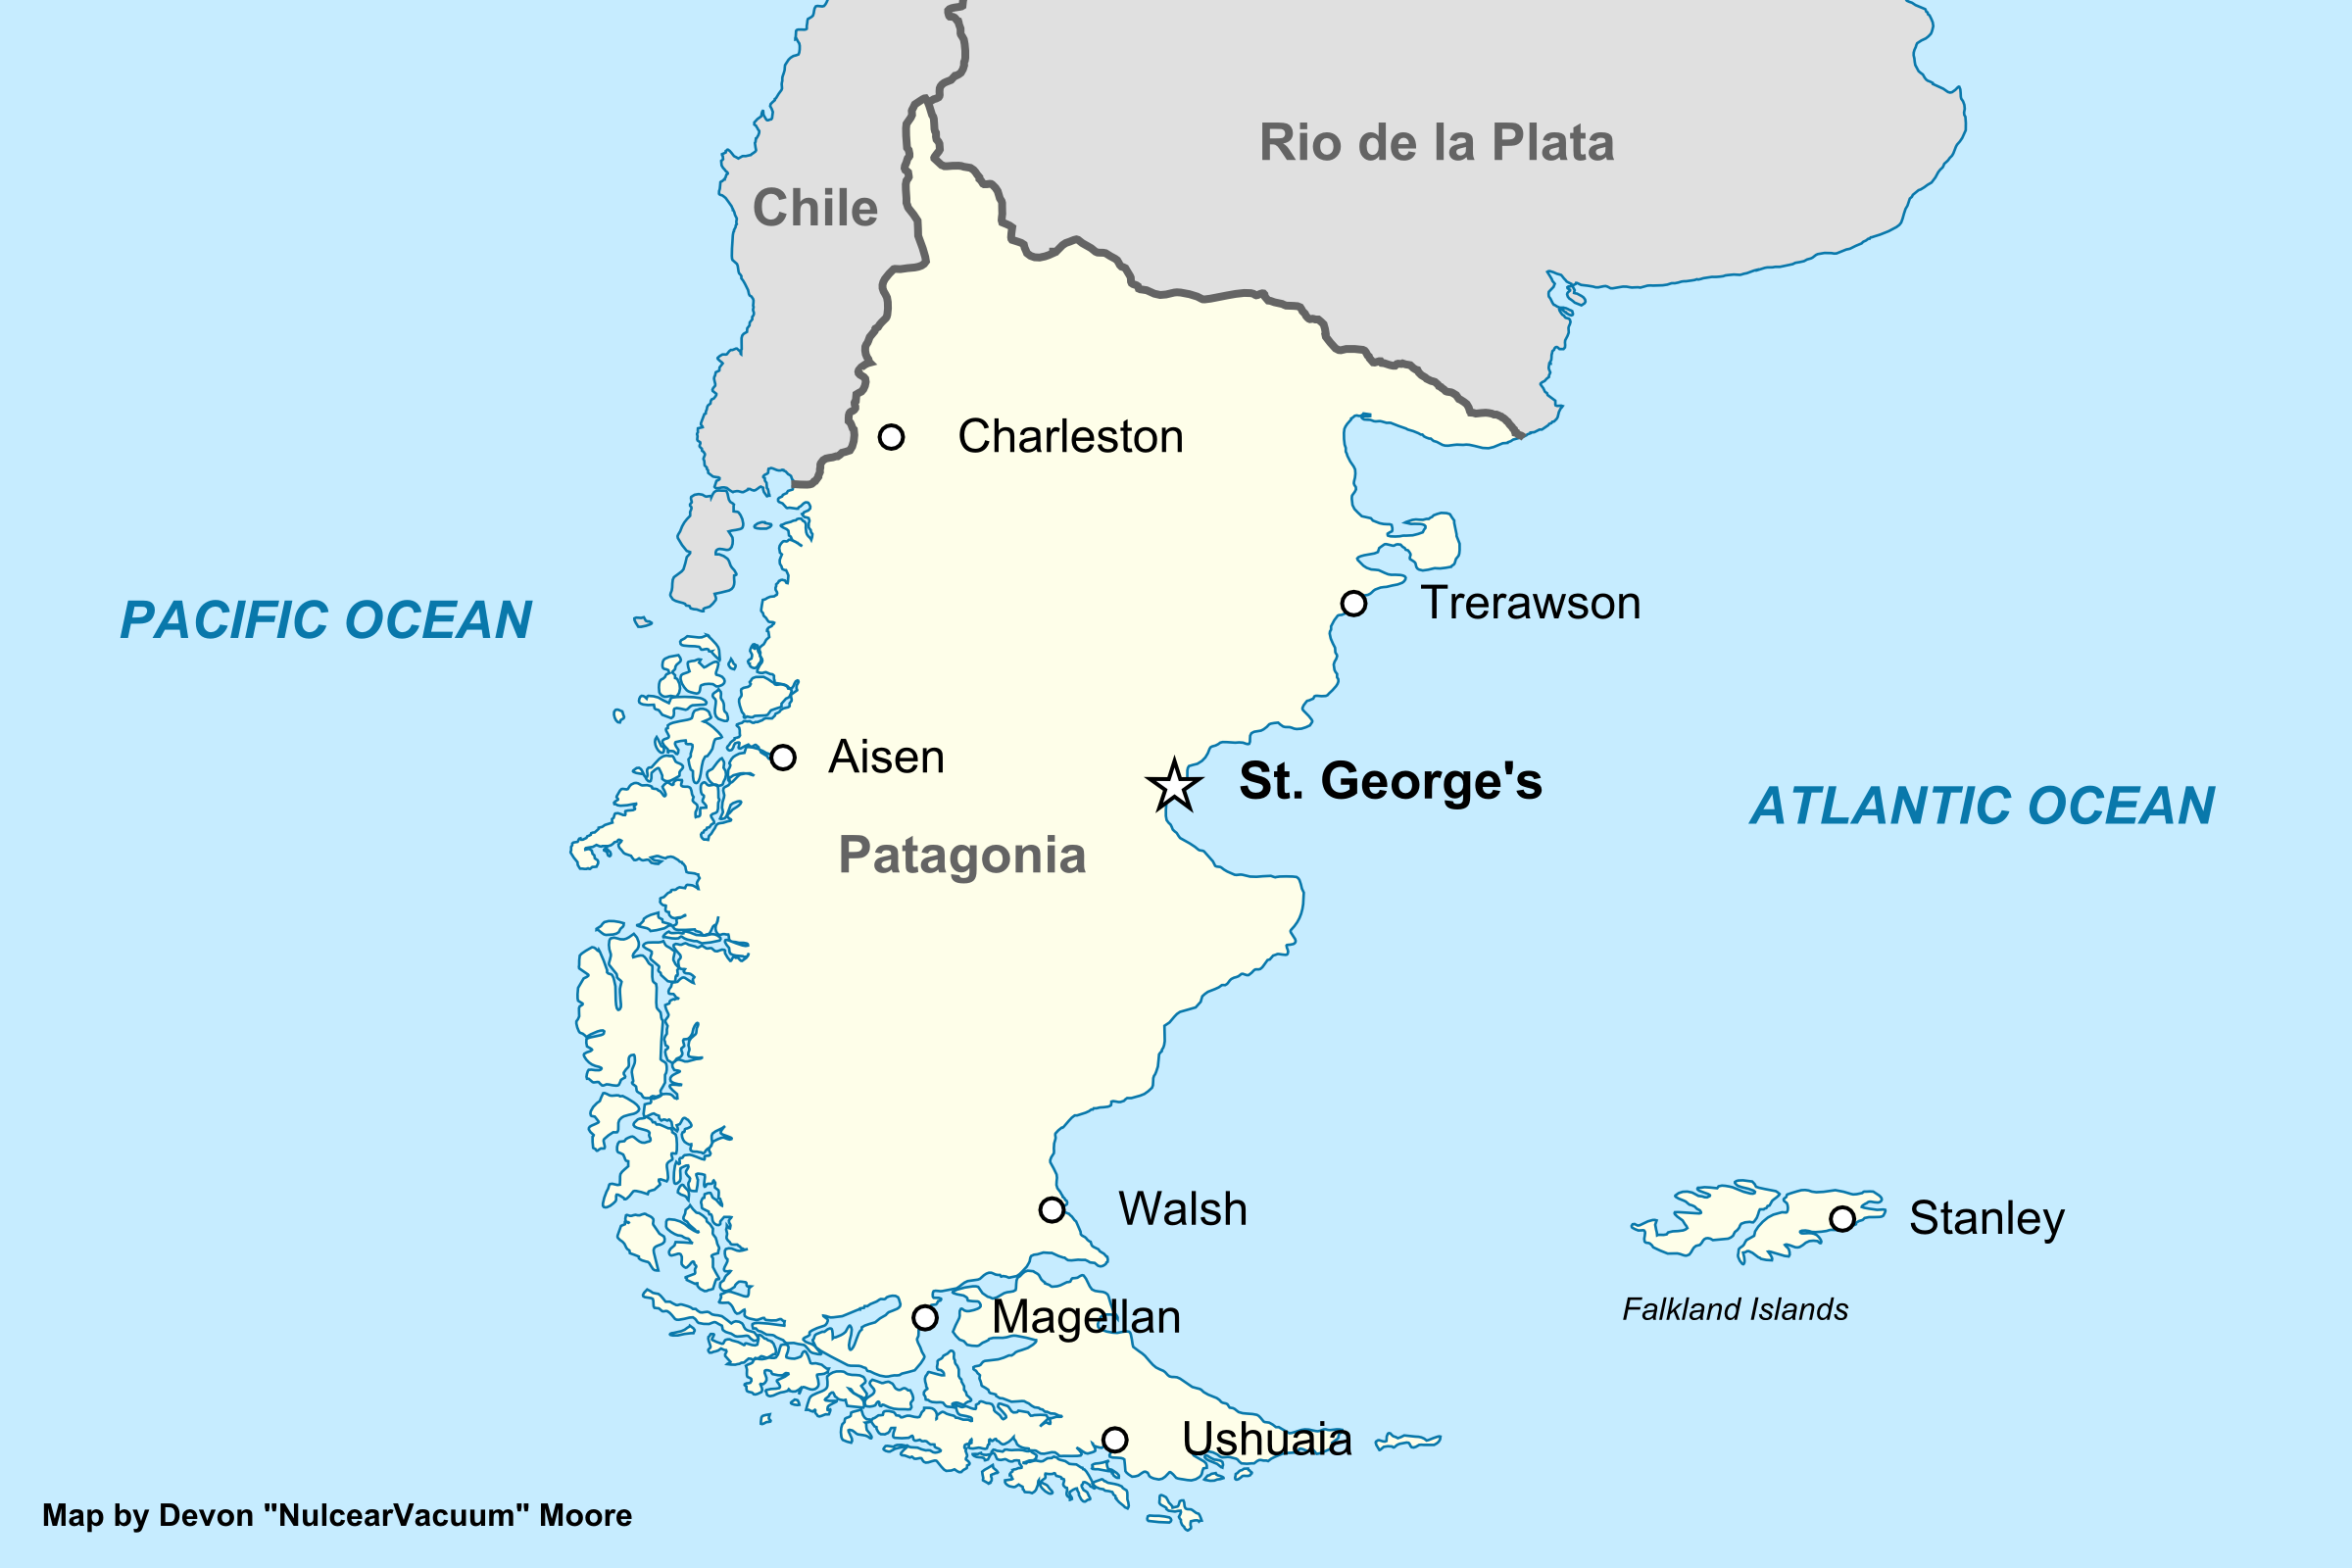 map of patagonia ( fallen stars)png. image  map of patagonia ( fallen stars)png  alternative